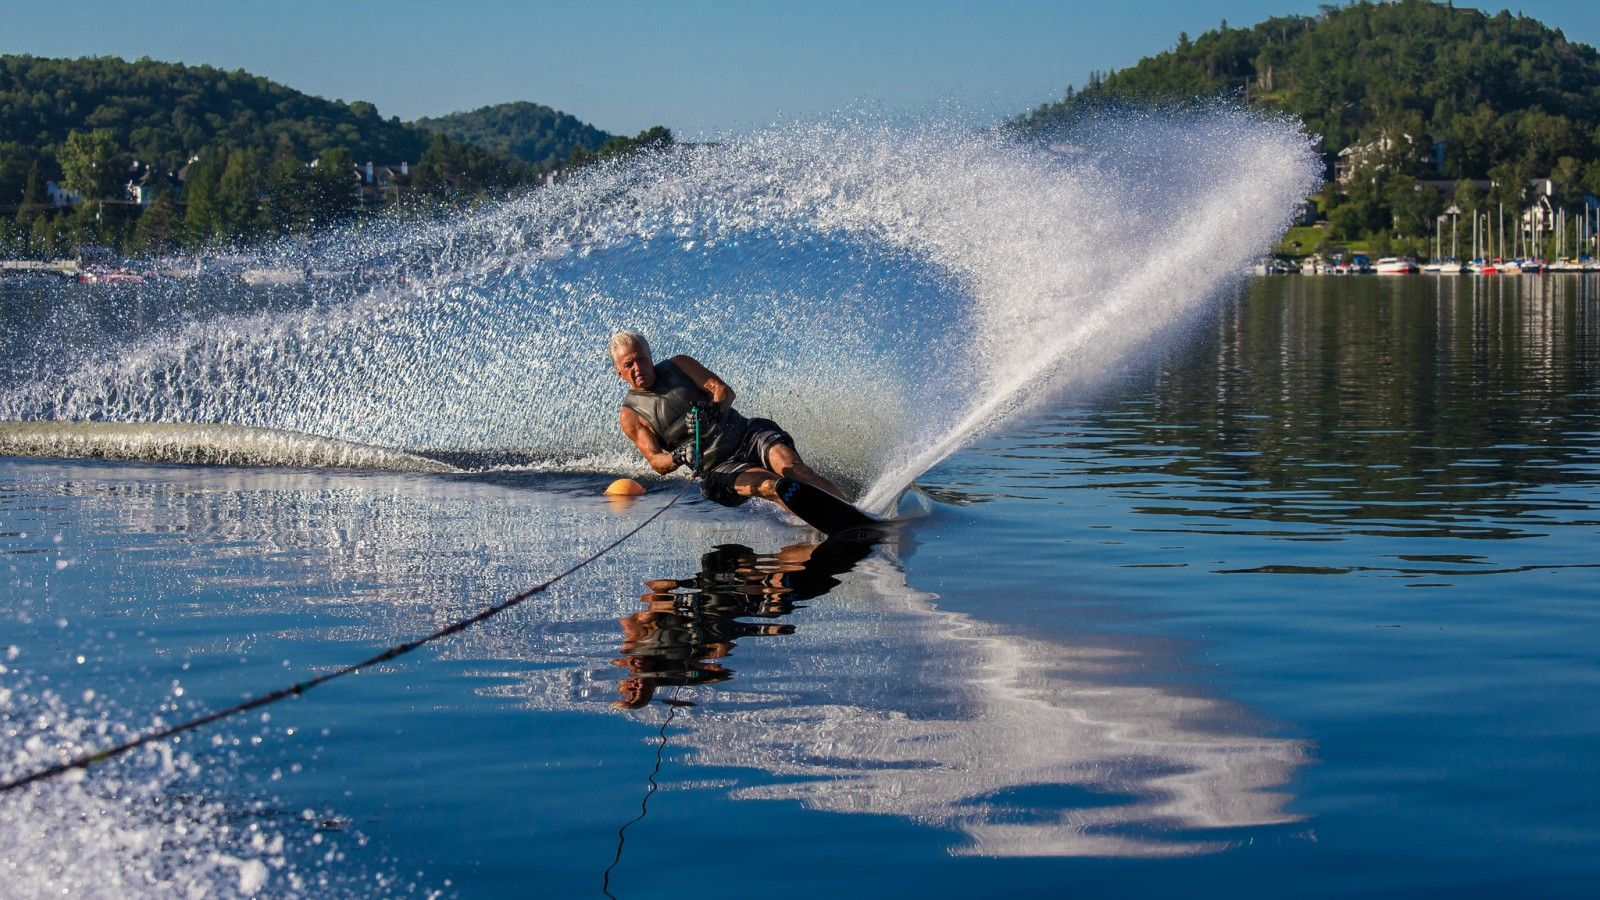 Things to do at Tremblant - Wakeboarding